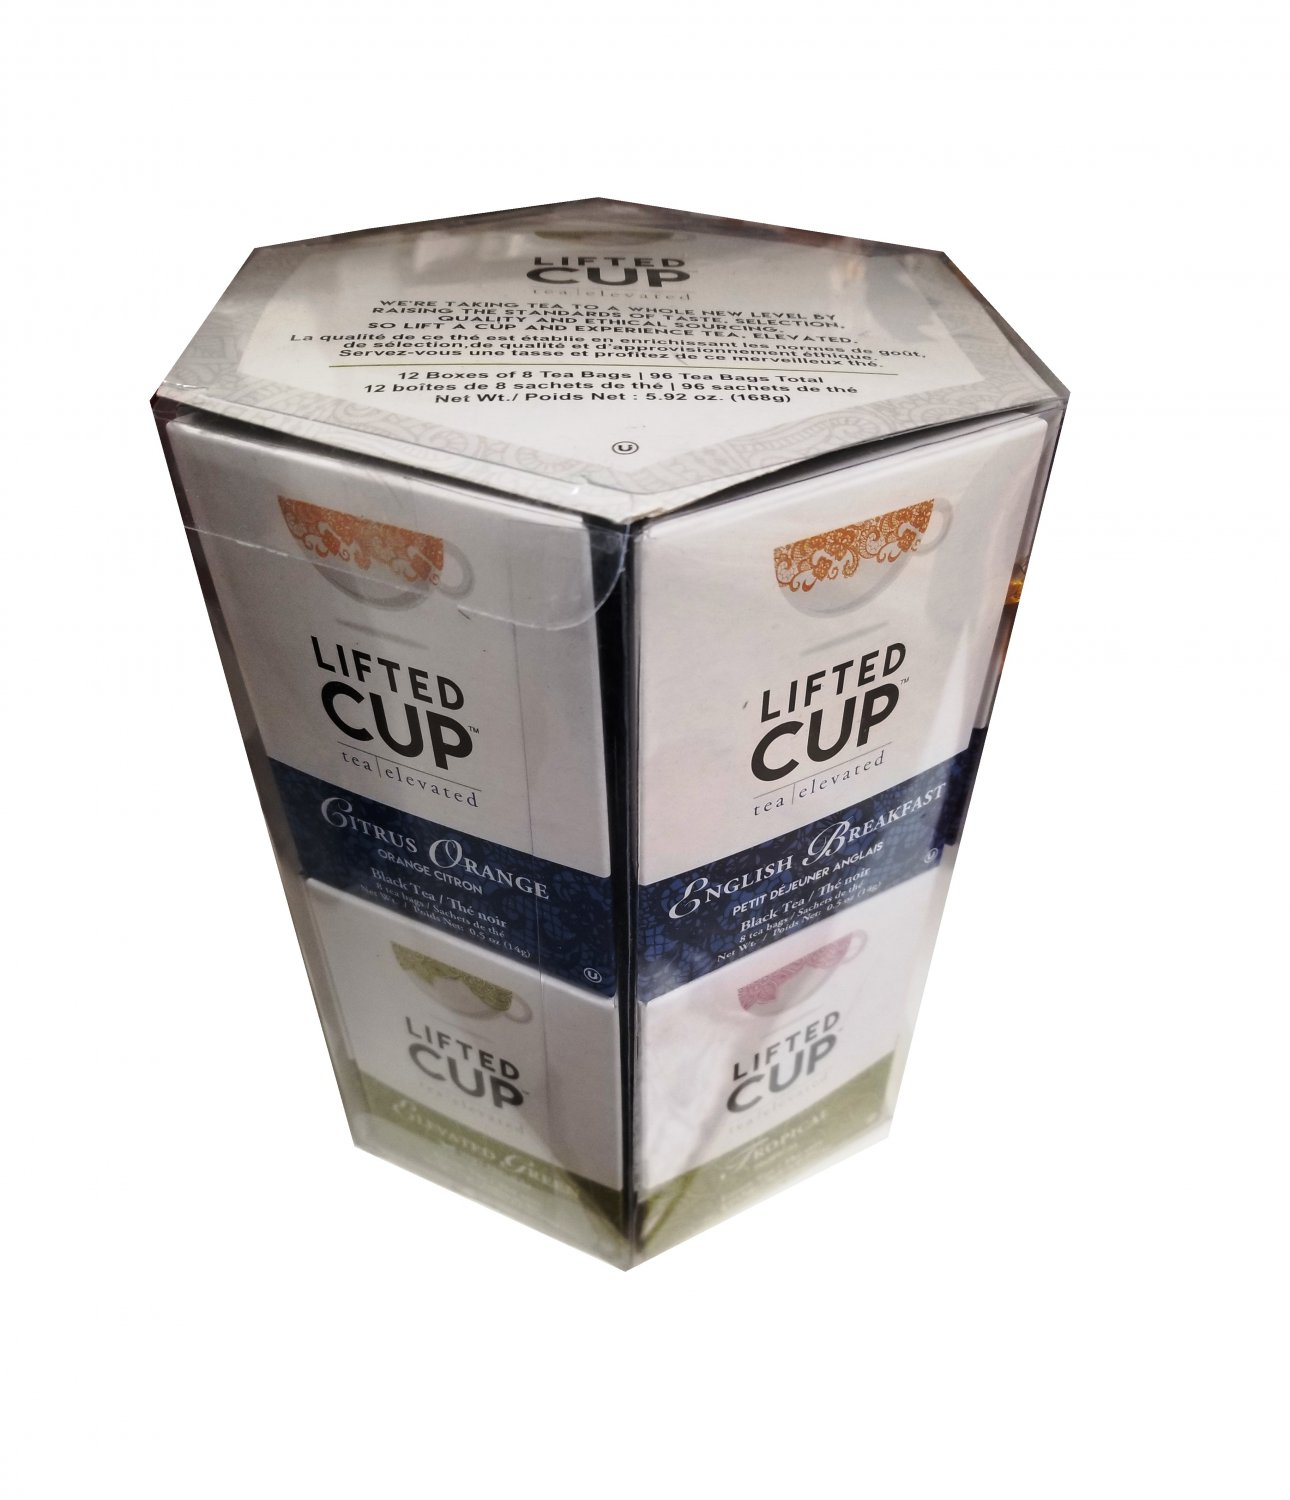 Specialty Tea Selection Lifted Cup Gift Box 96 tea bags - 12 flavors Christmas Gift Idea